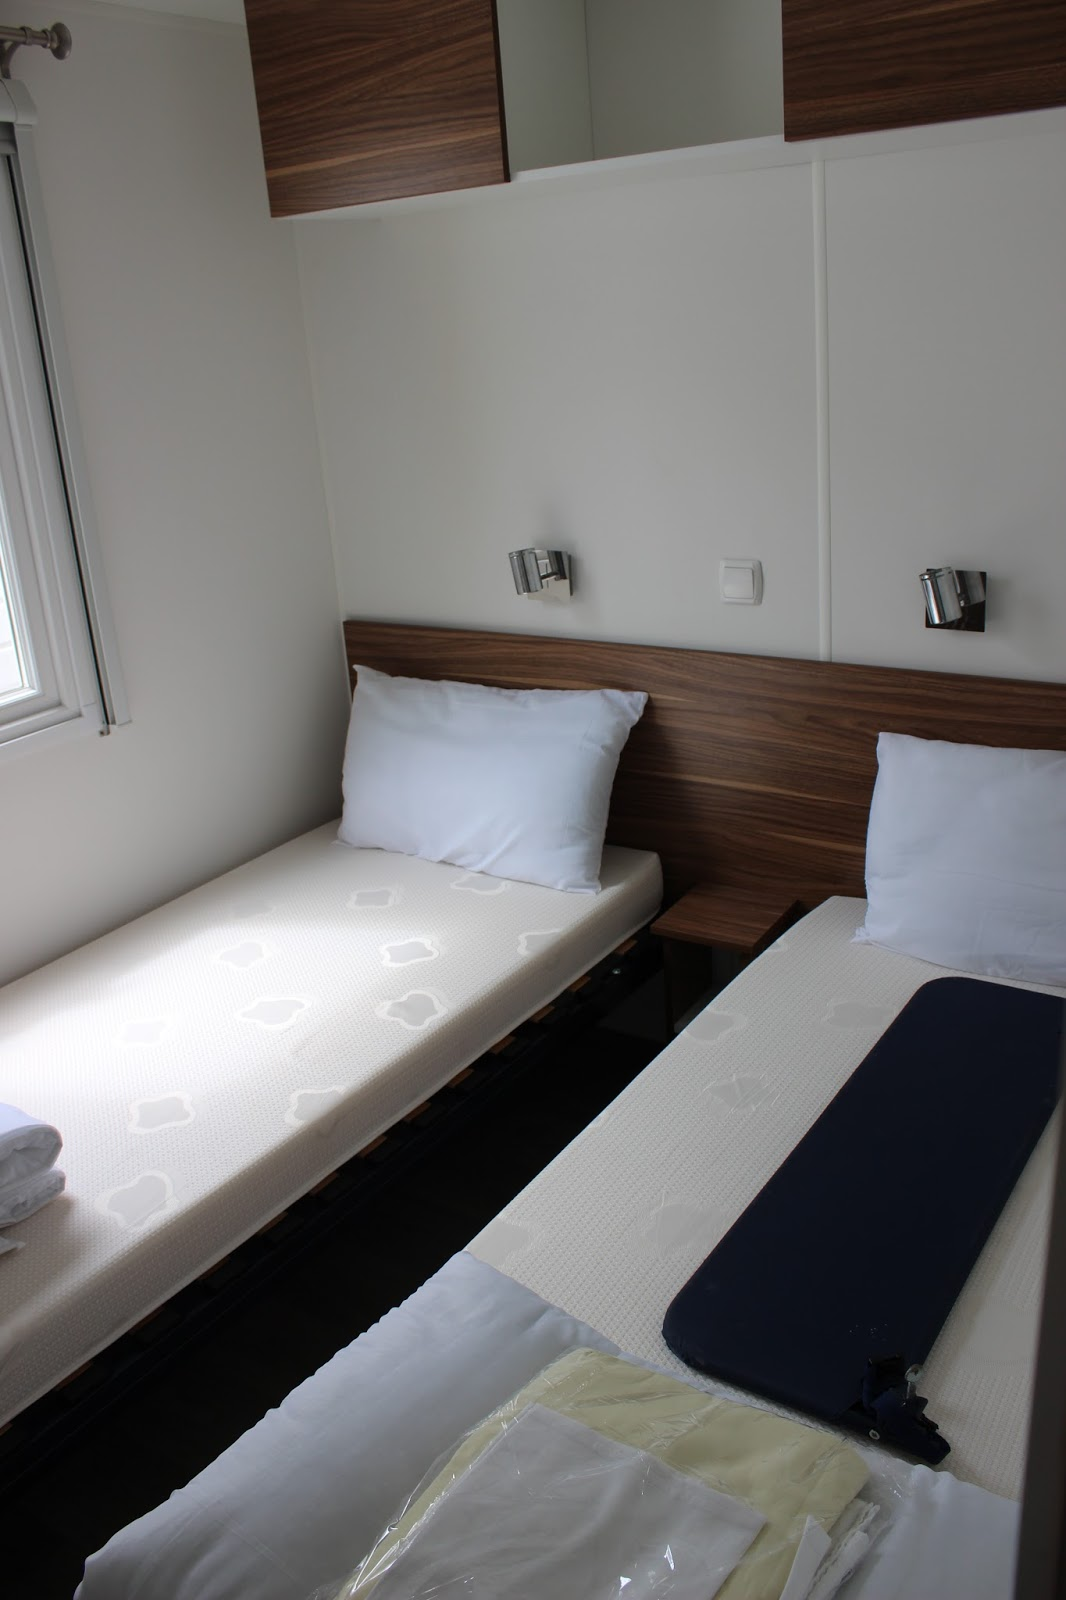 the double and twin beds were camping bed style and one of the beds were already missing a few slats the bedroom windows all come with a black out blind